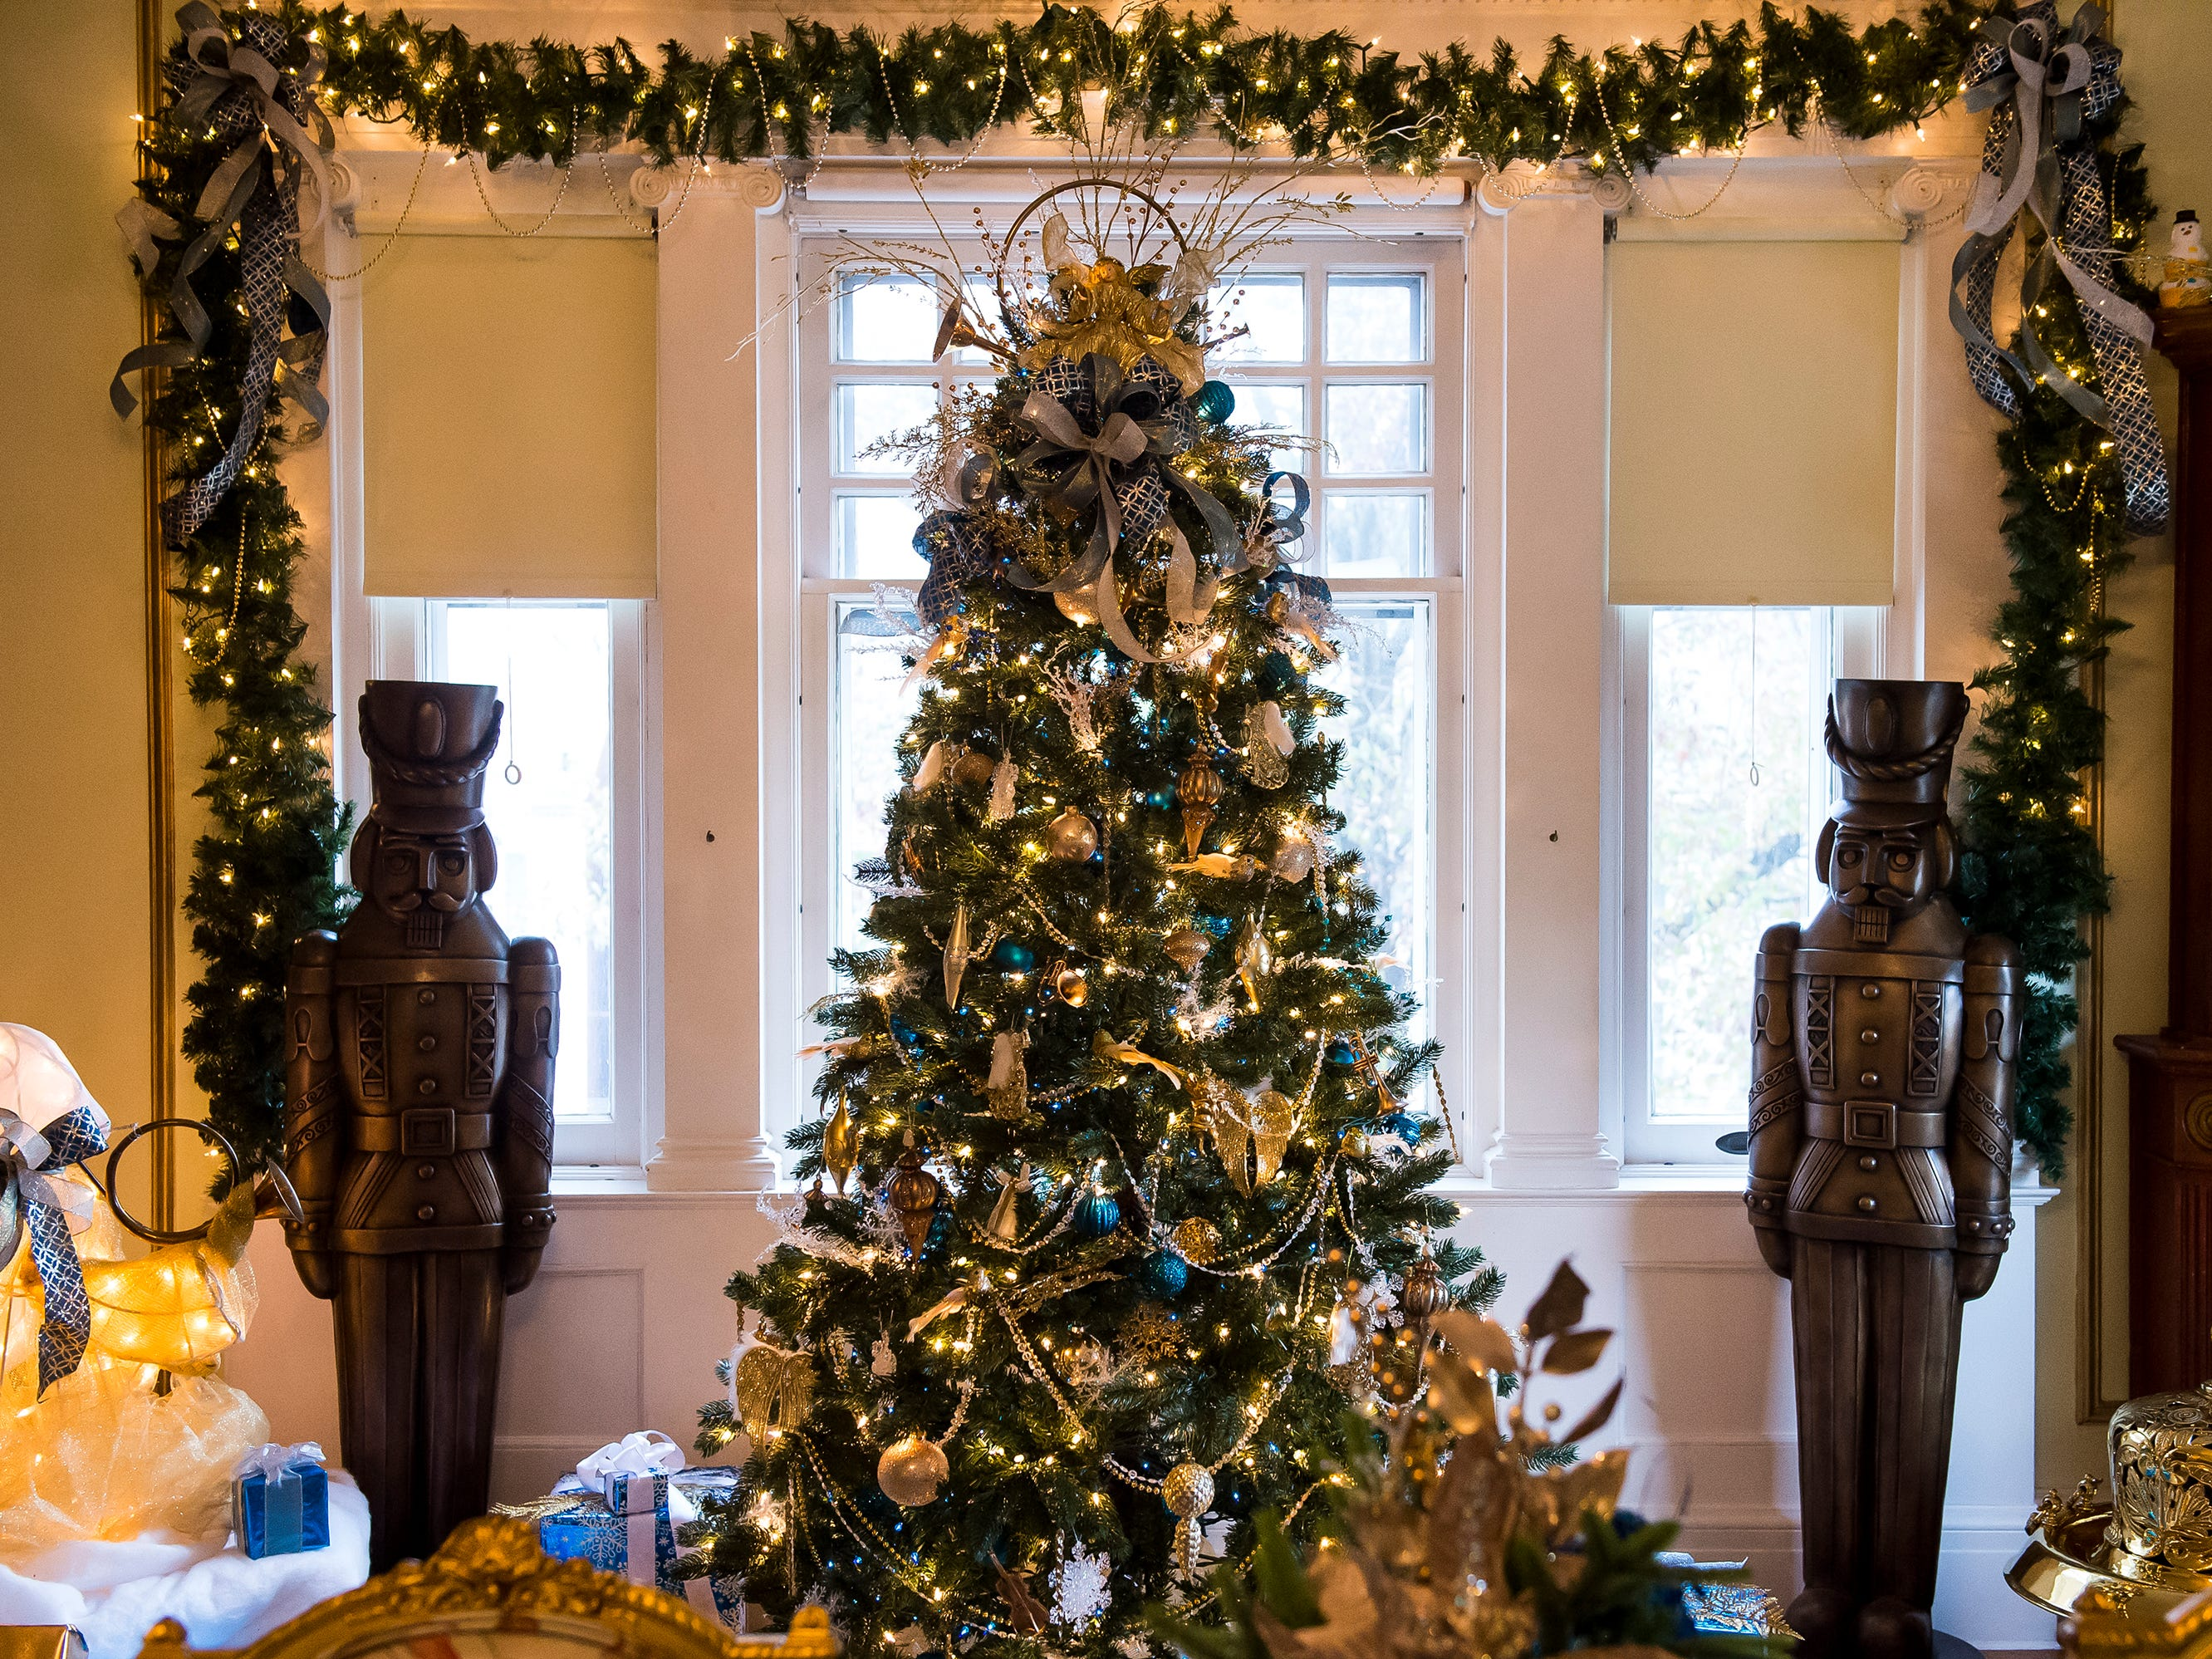 An angel-themed tree is one of over 40 decorated Christmas trees on display at the Warehime-Myers Mansion in Hanover. Tree tours are currently being offered and a schedule can be found on the Hanover Area Historical Society's Facebook page.